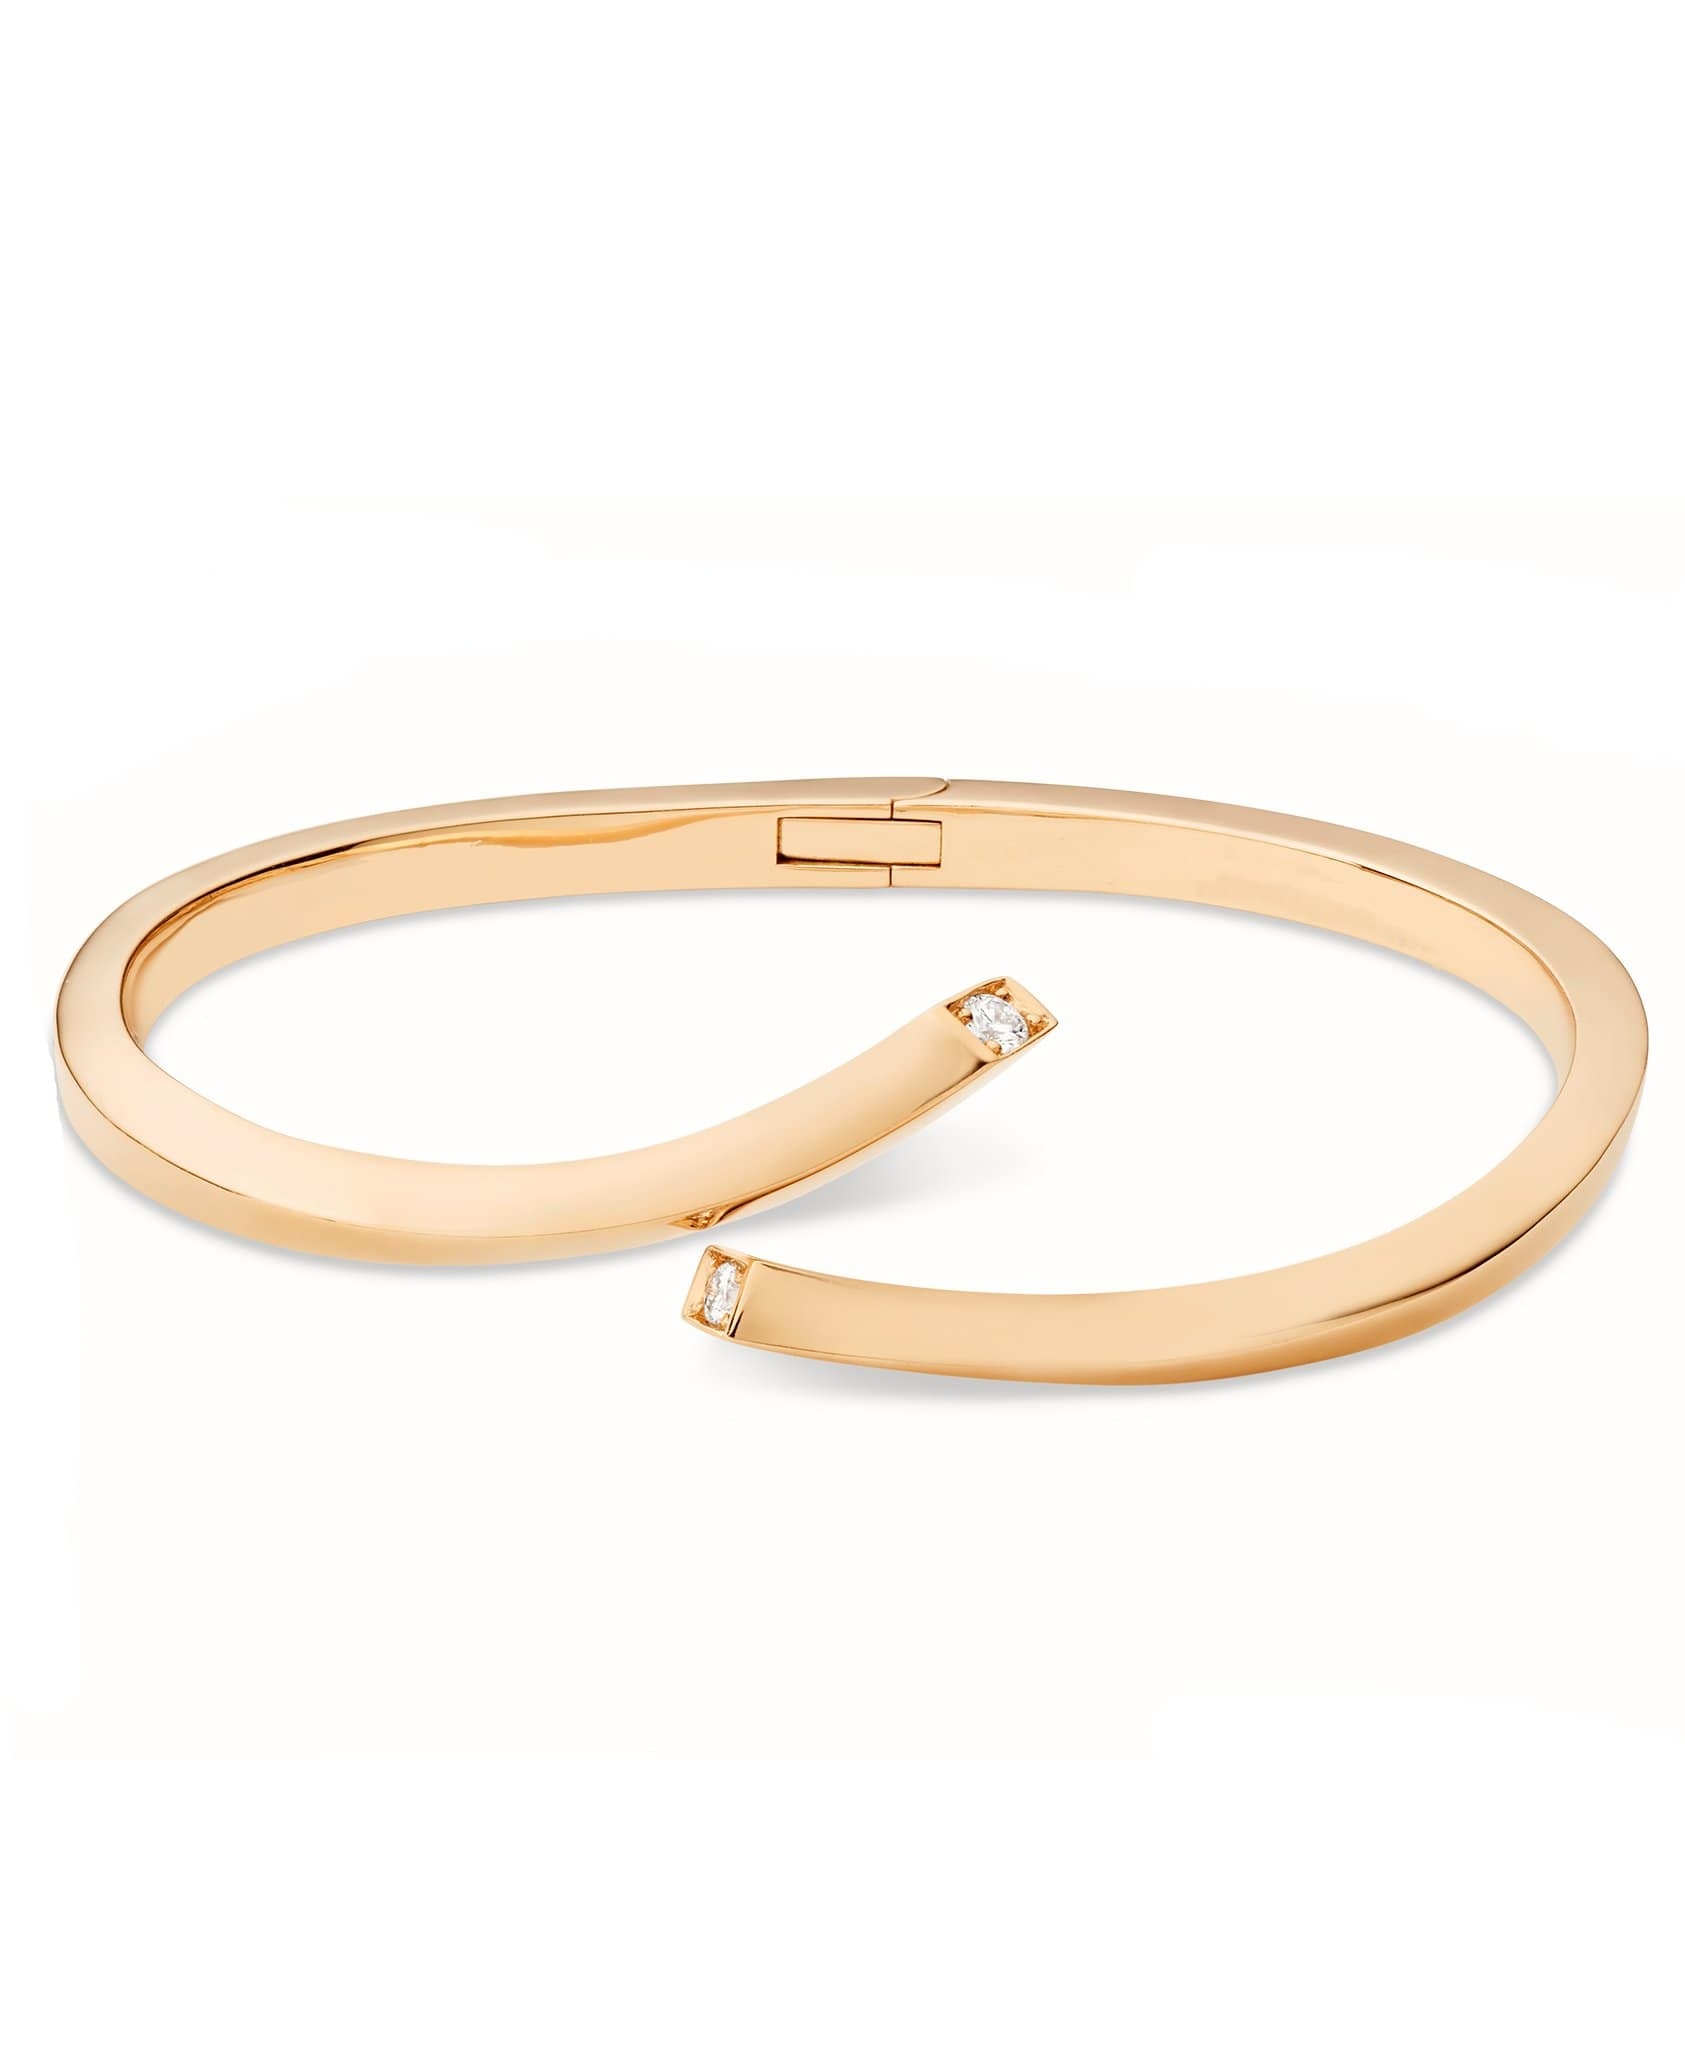 Gold Thread Bangle: Discover Luxury Fine Jewelry | Nouvel Heritage